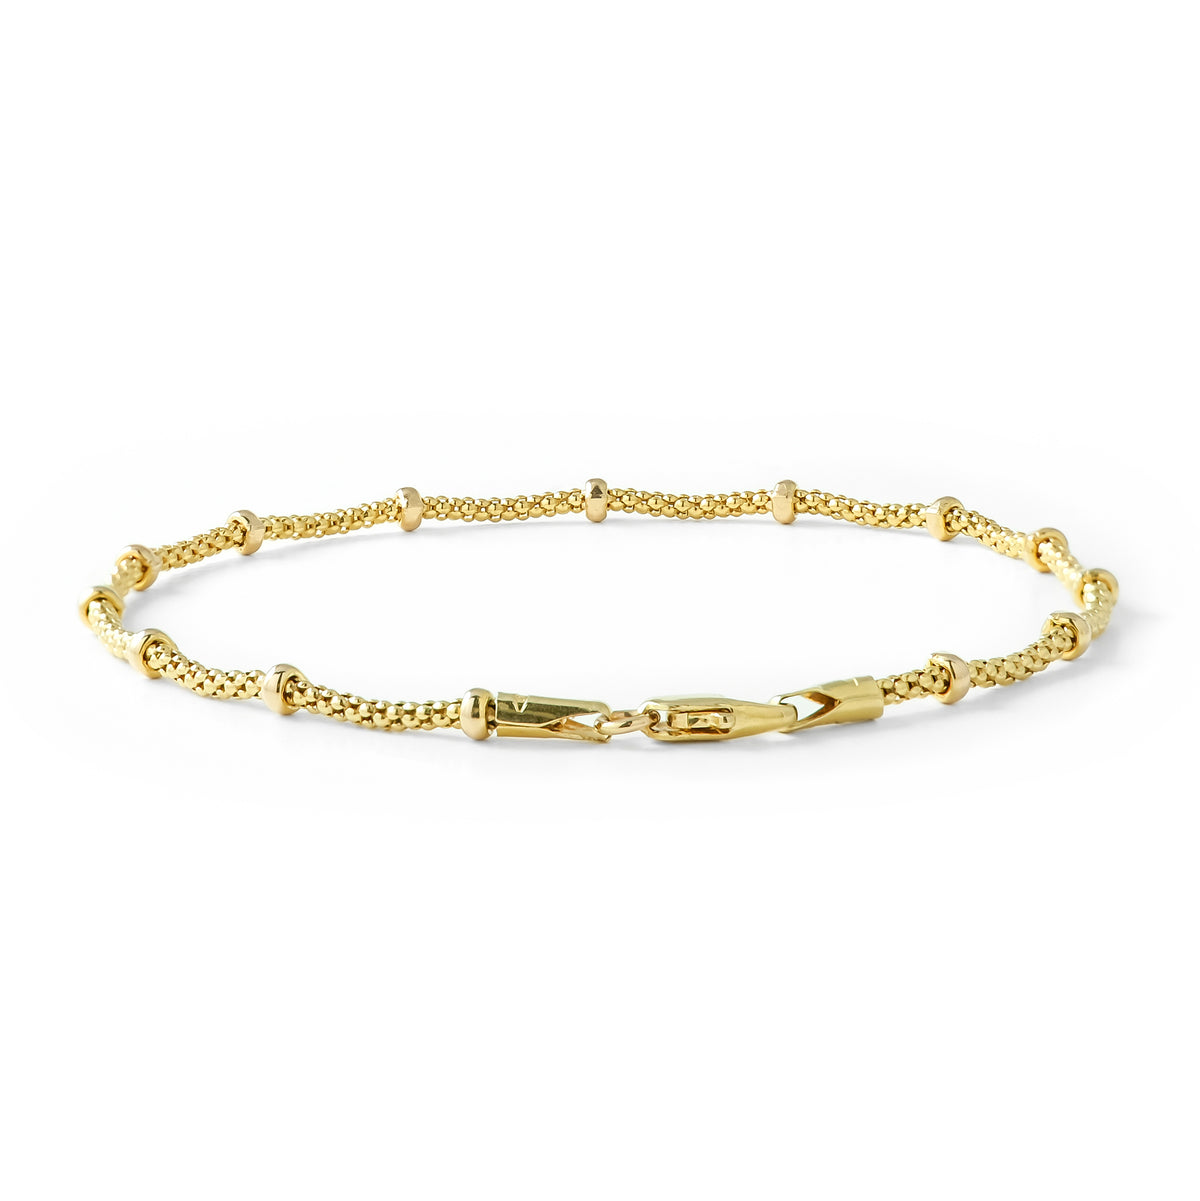 Vintage 9ct Yellow Gold Ball Bracelet